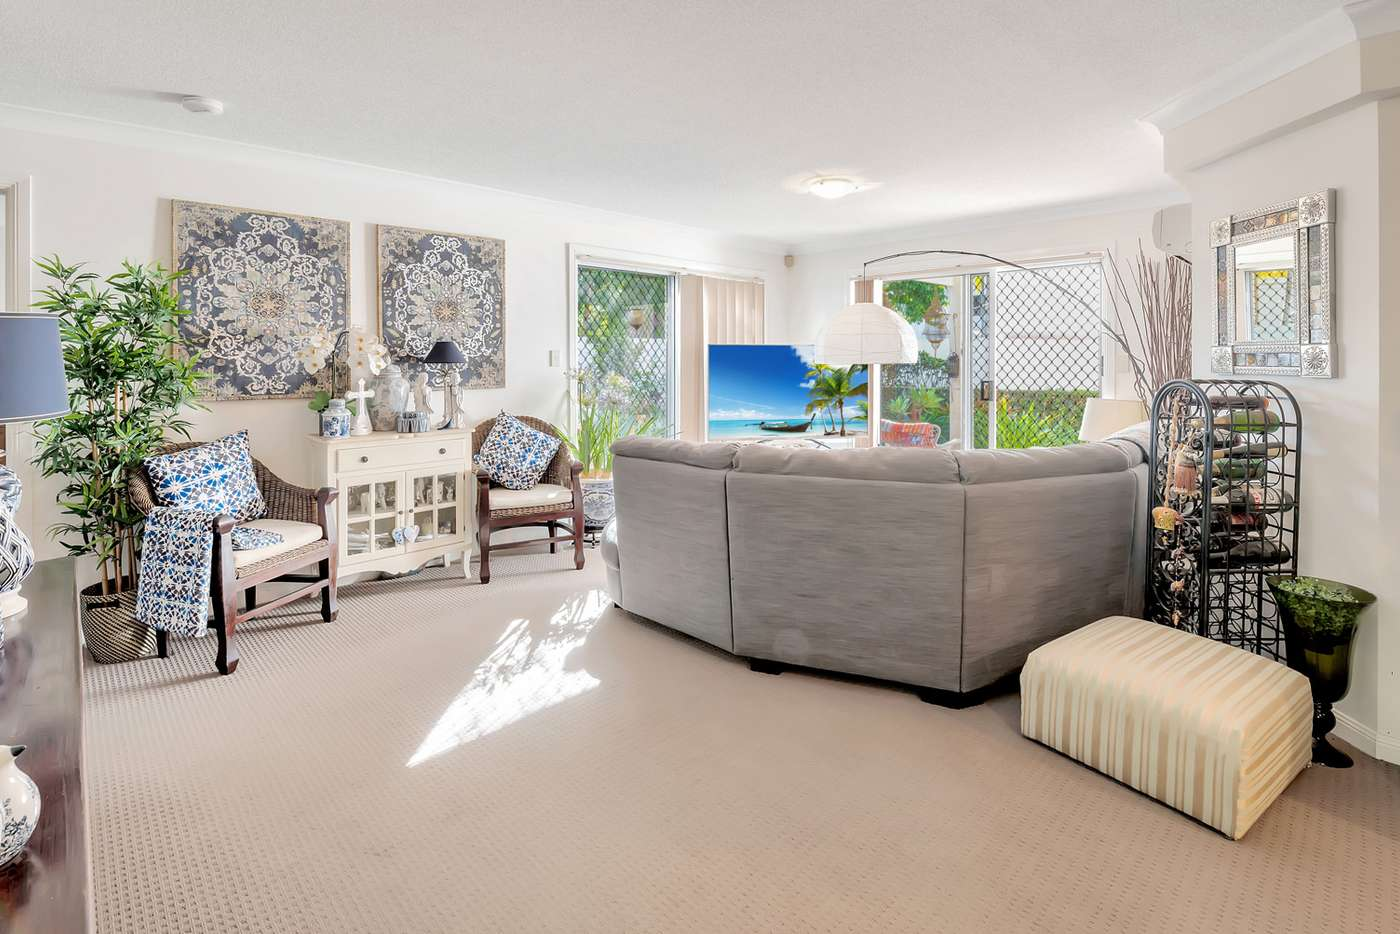 Main view of Homely apartment listing, 31/100 Cotlew Street East, Southport QLD 4215